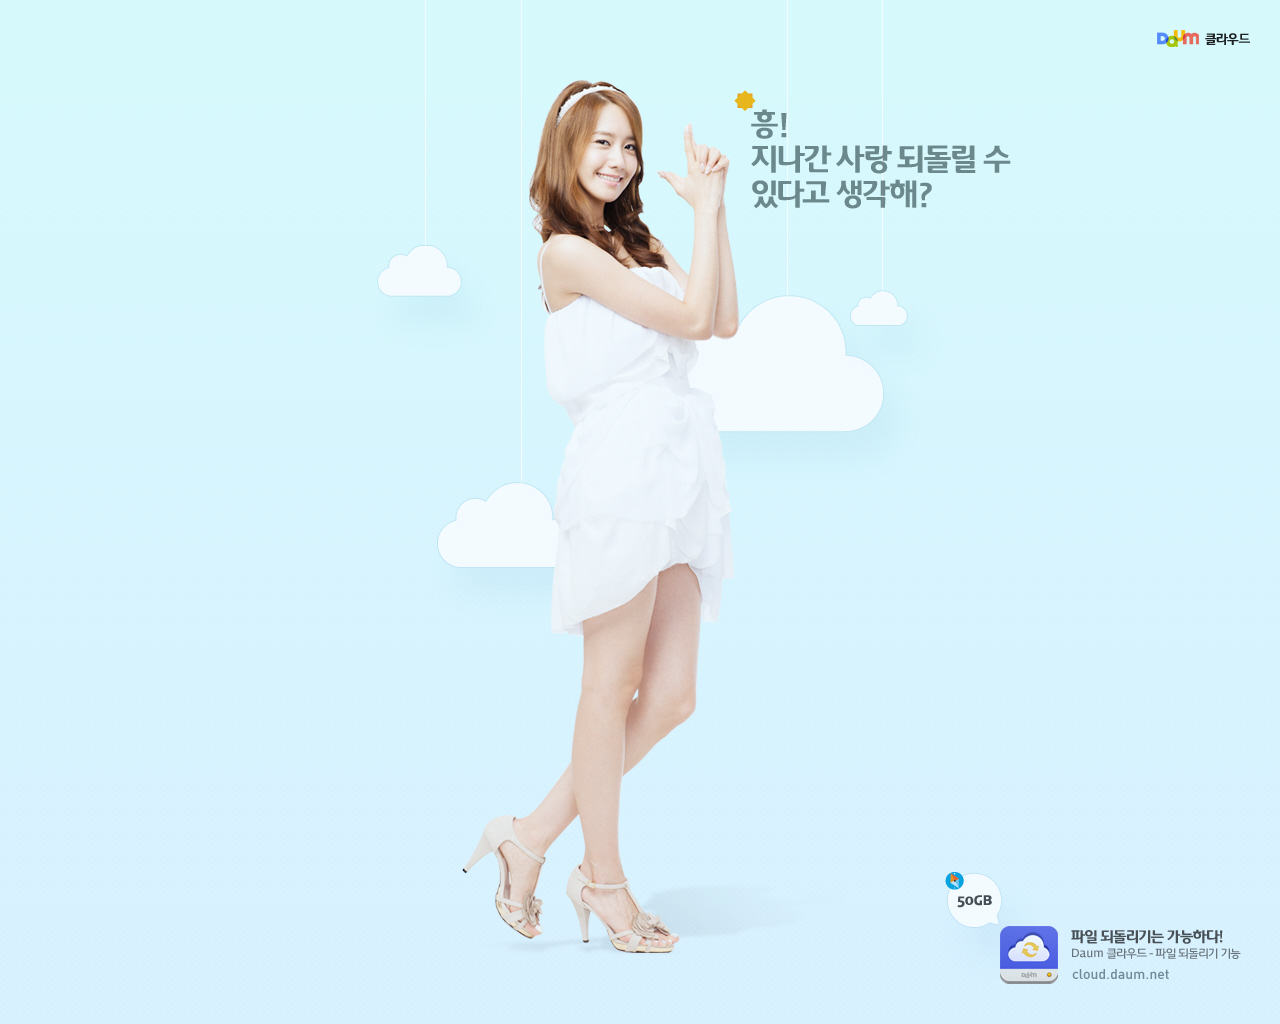 ... /AAAAAAAACNc/ORUaT4qJTYk/s1600/Yoona+SNSD+Daum+Cloud+Wallpaper.jpg